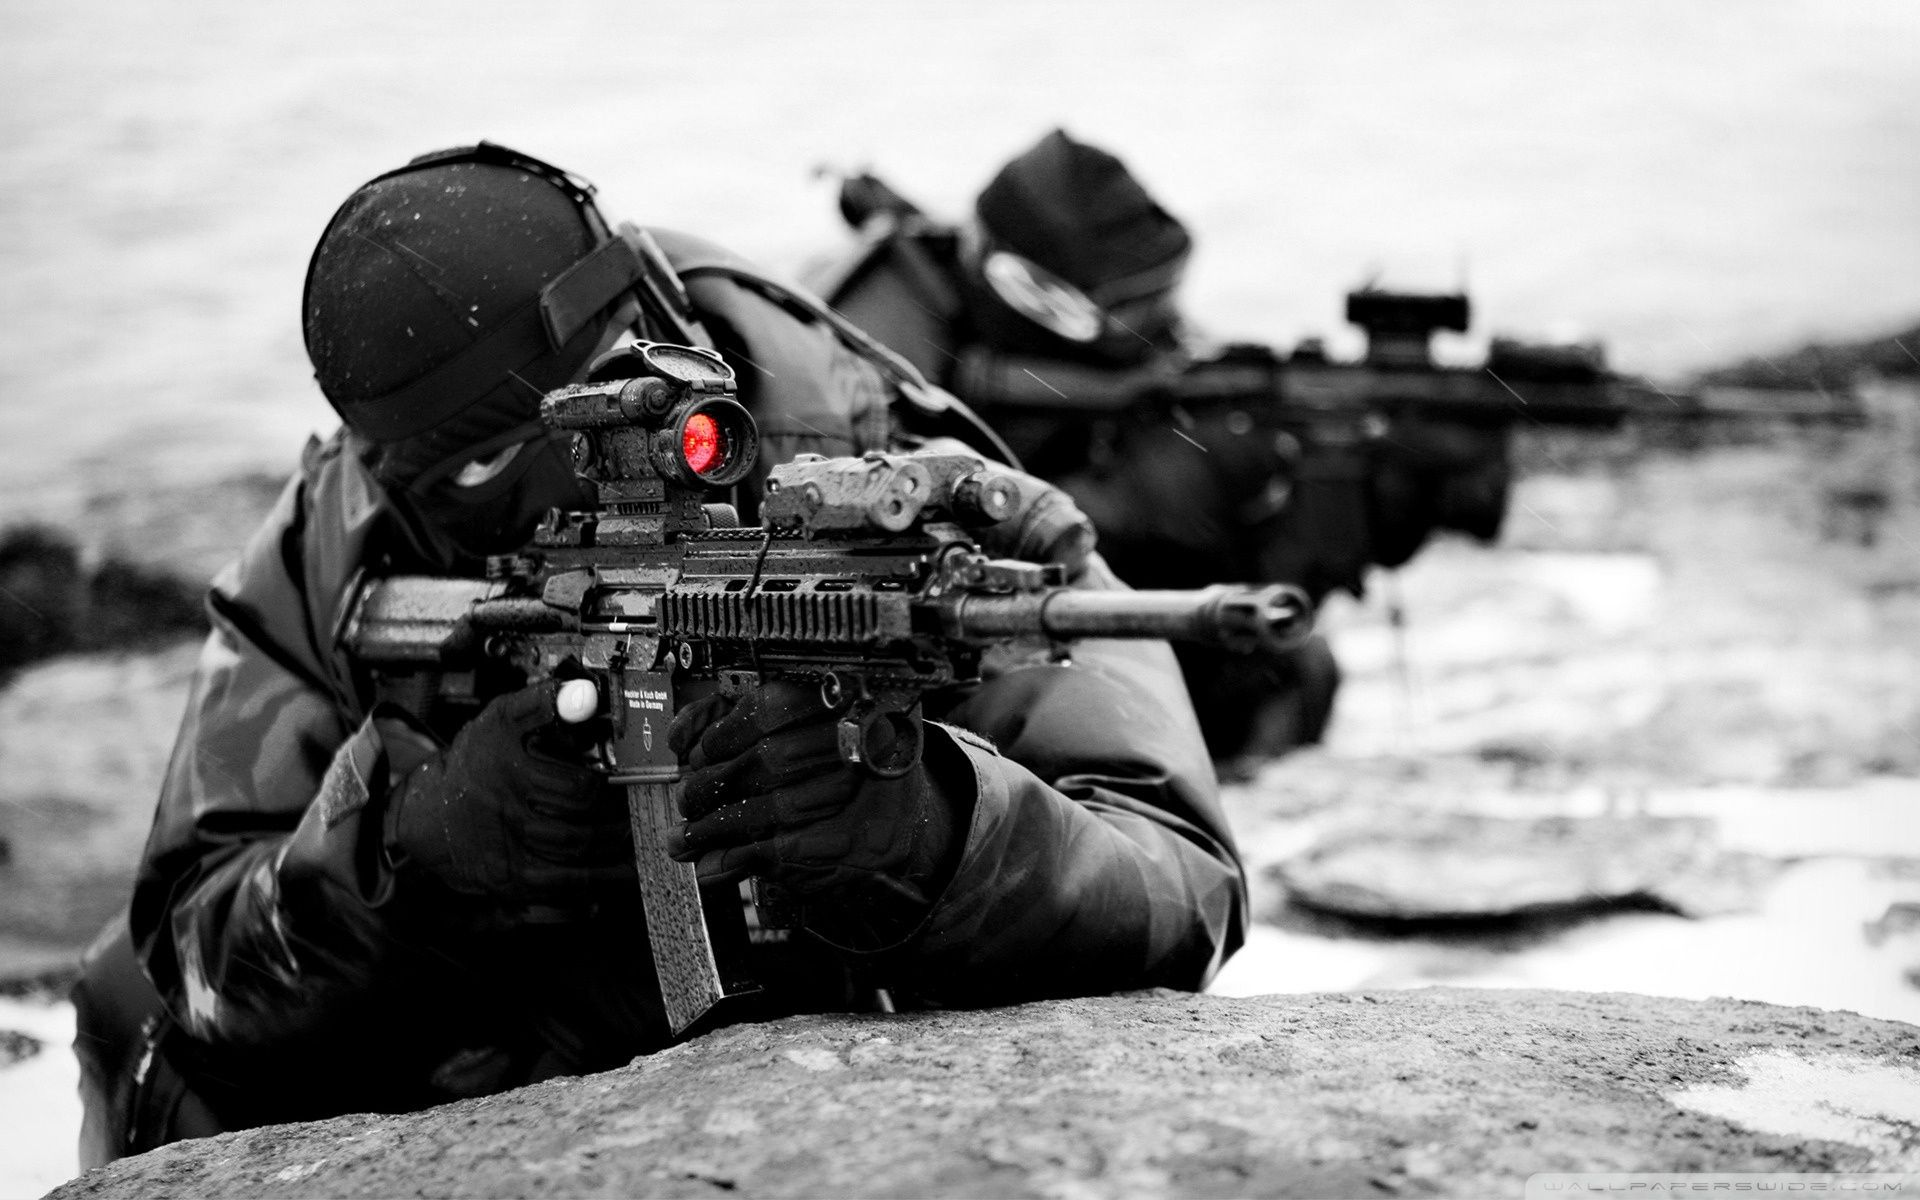 army hd desktop wallpapers for widescreen | hd wallpapers